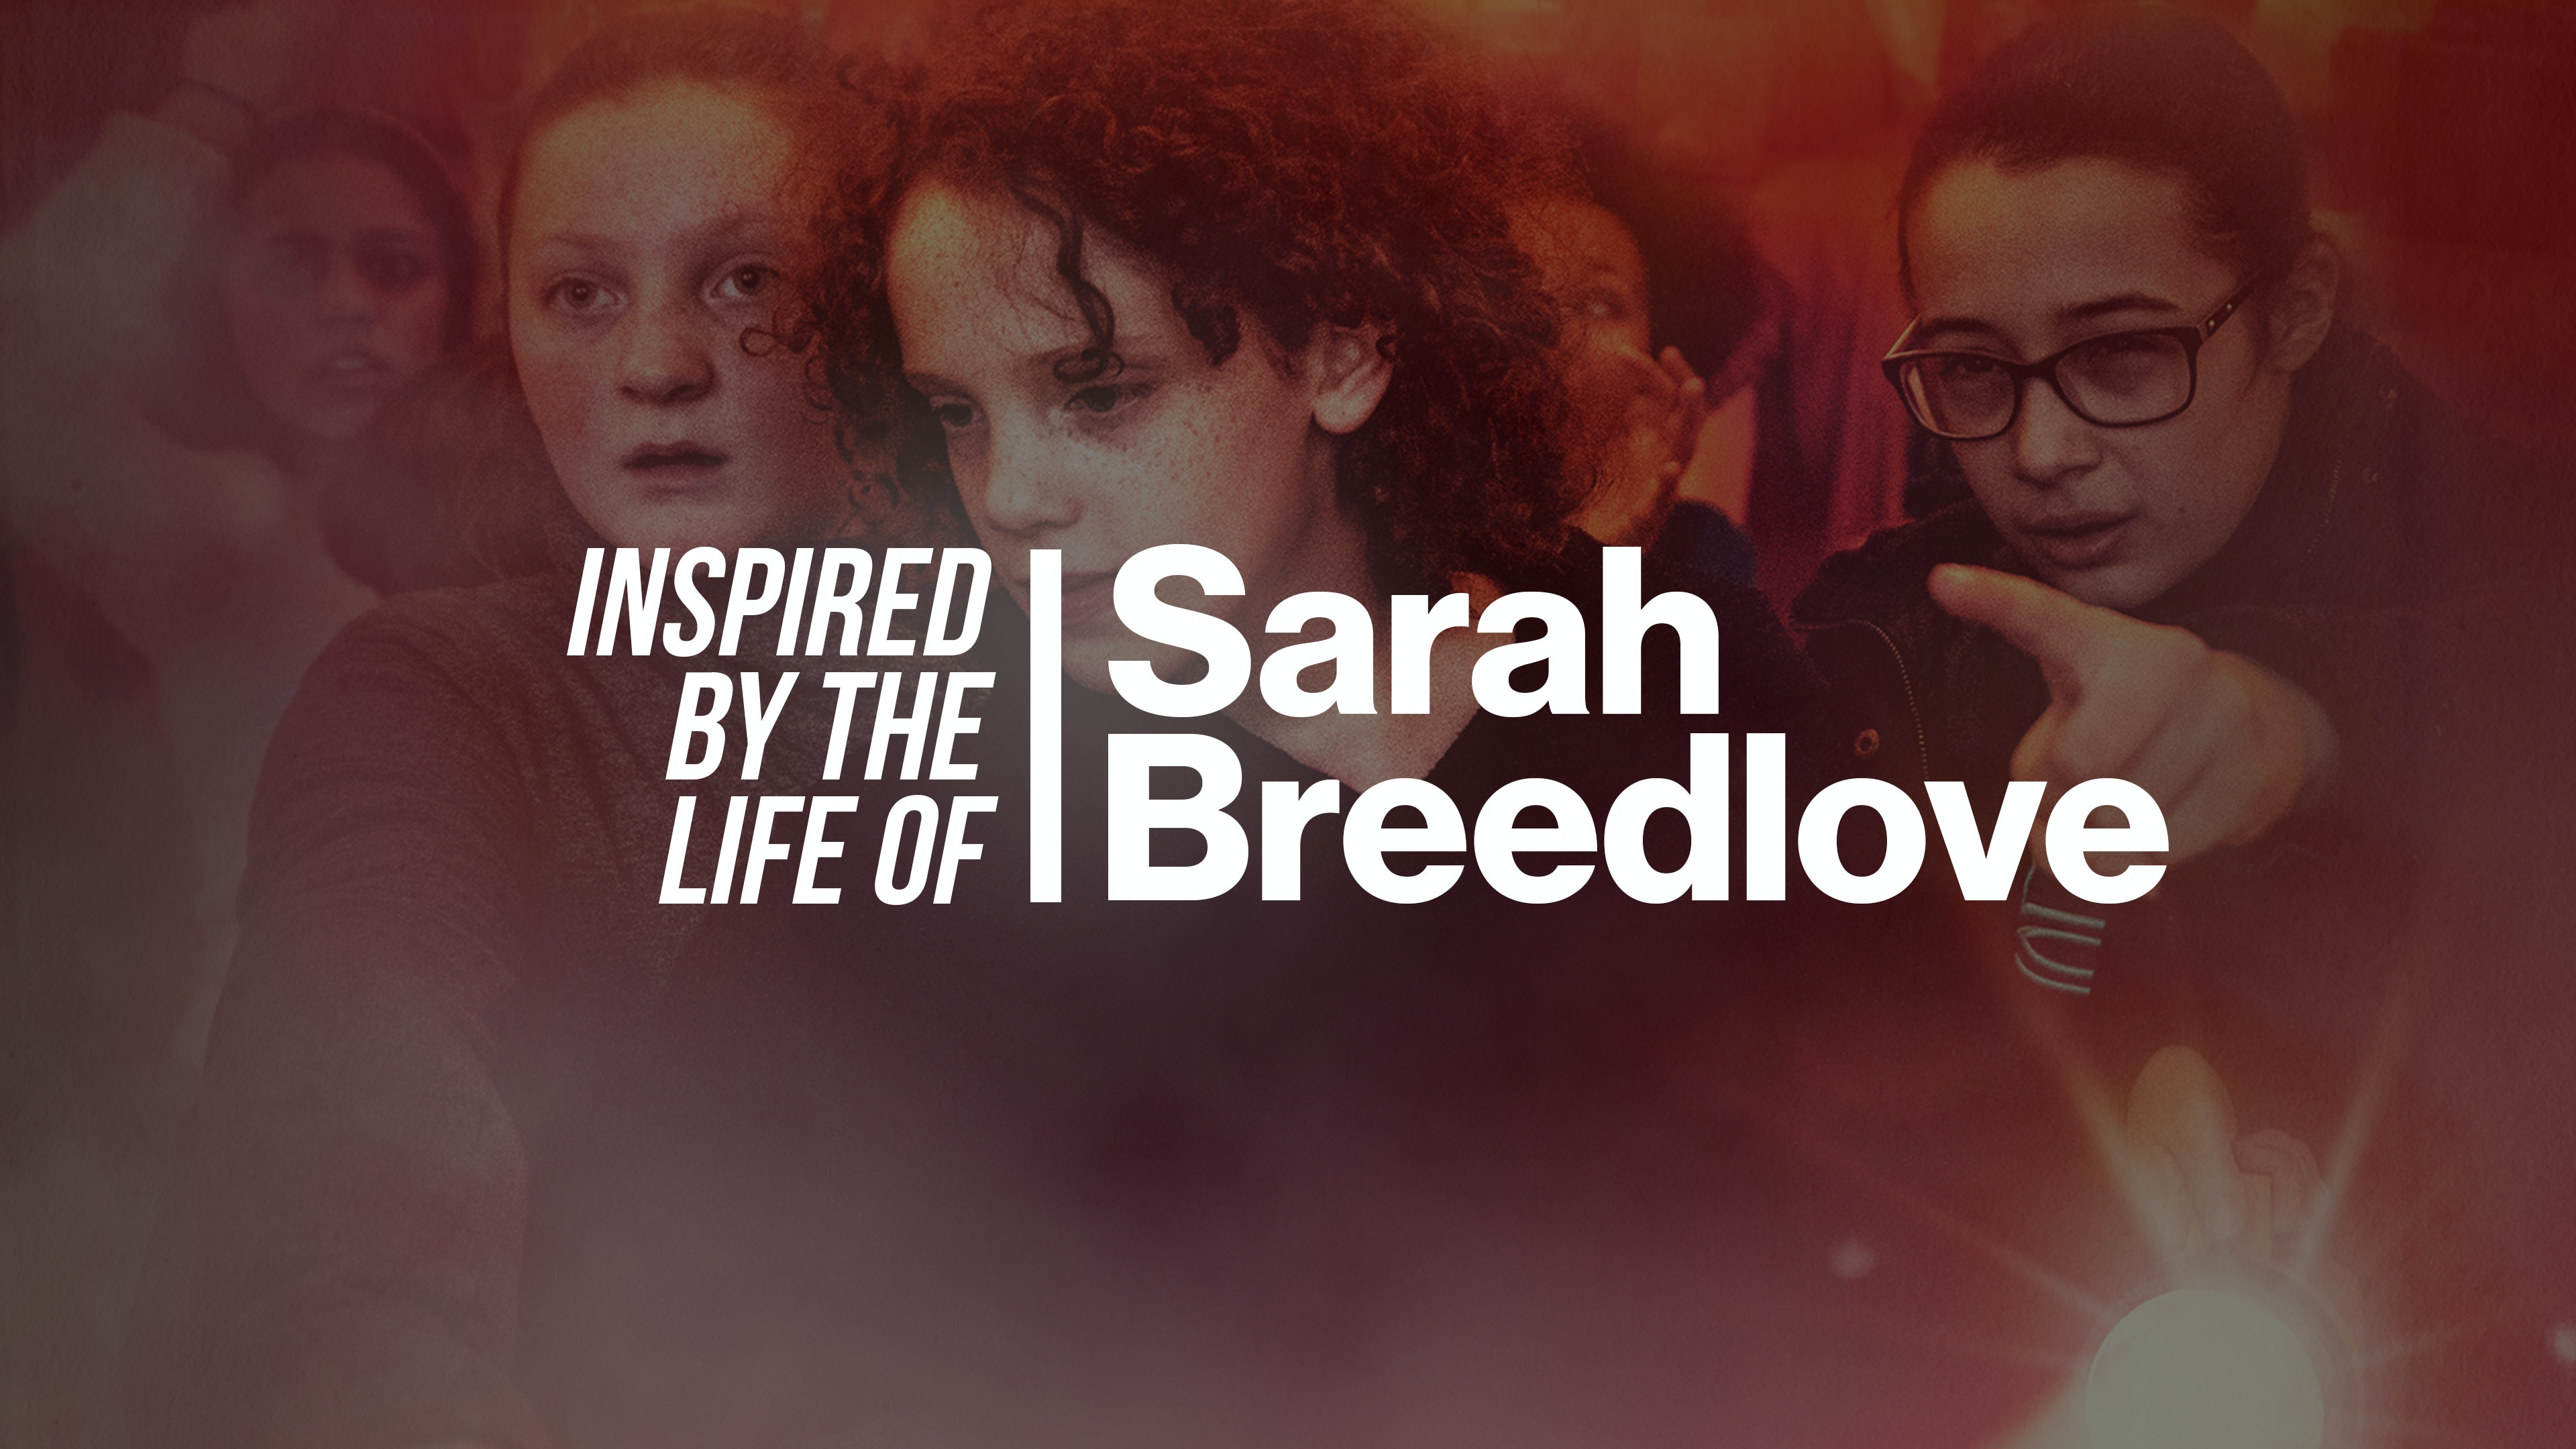 Inspired by the Life of: Sarah Breedlove